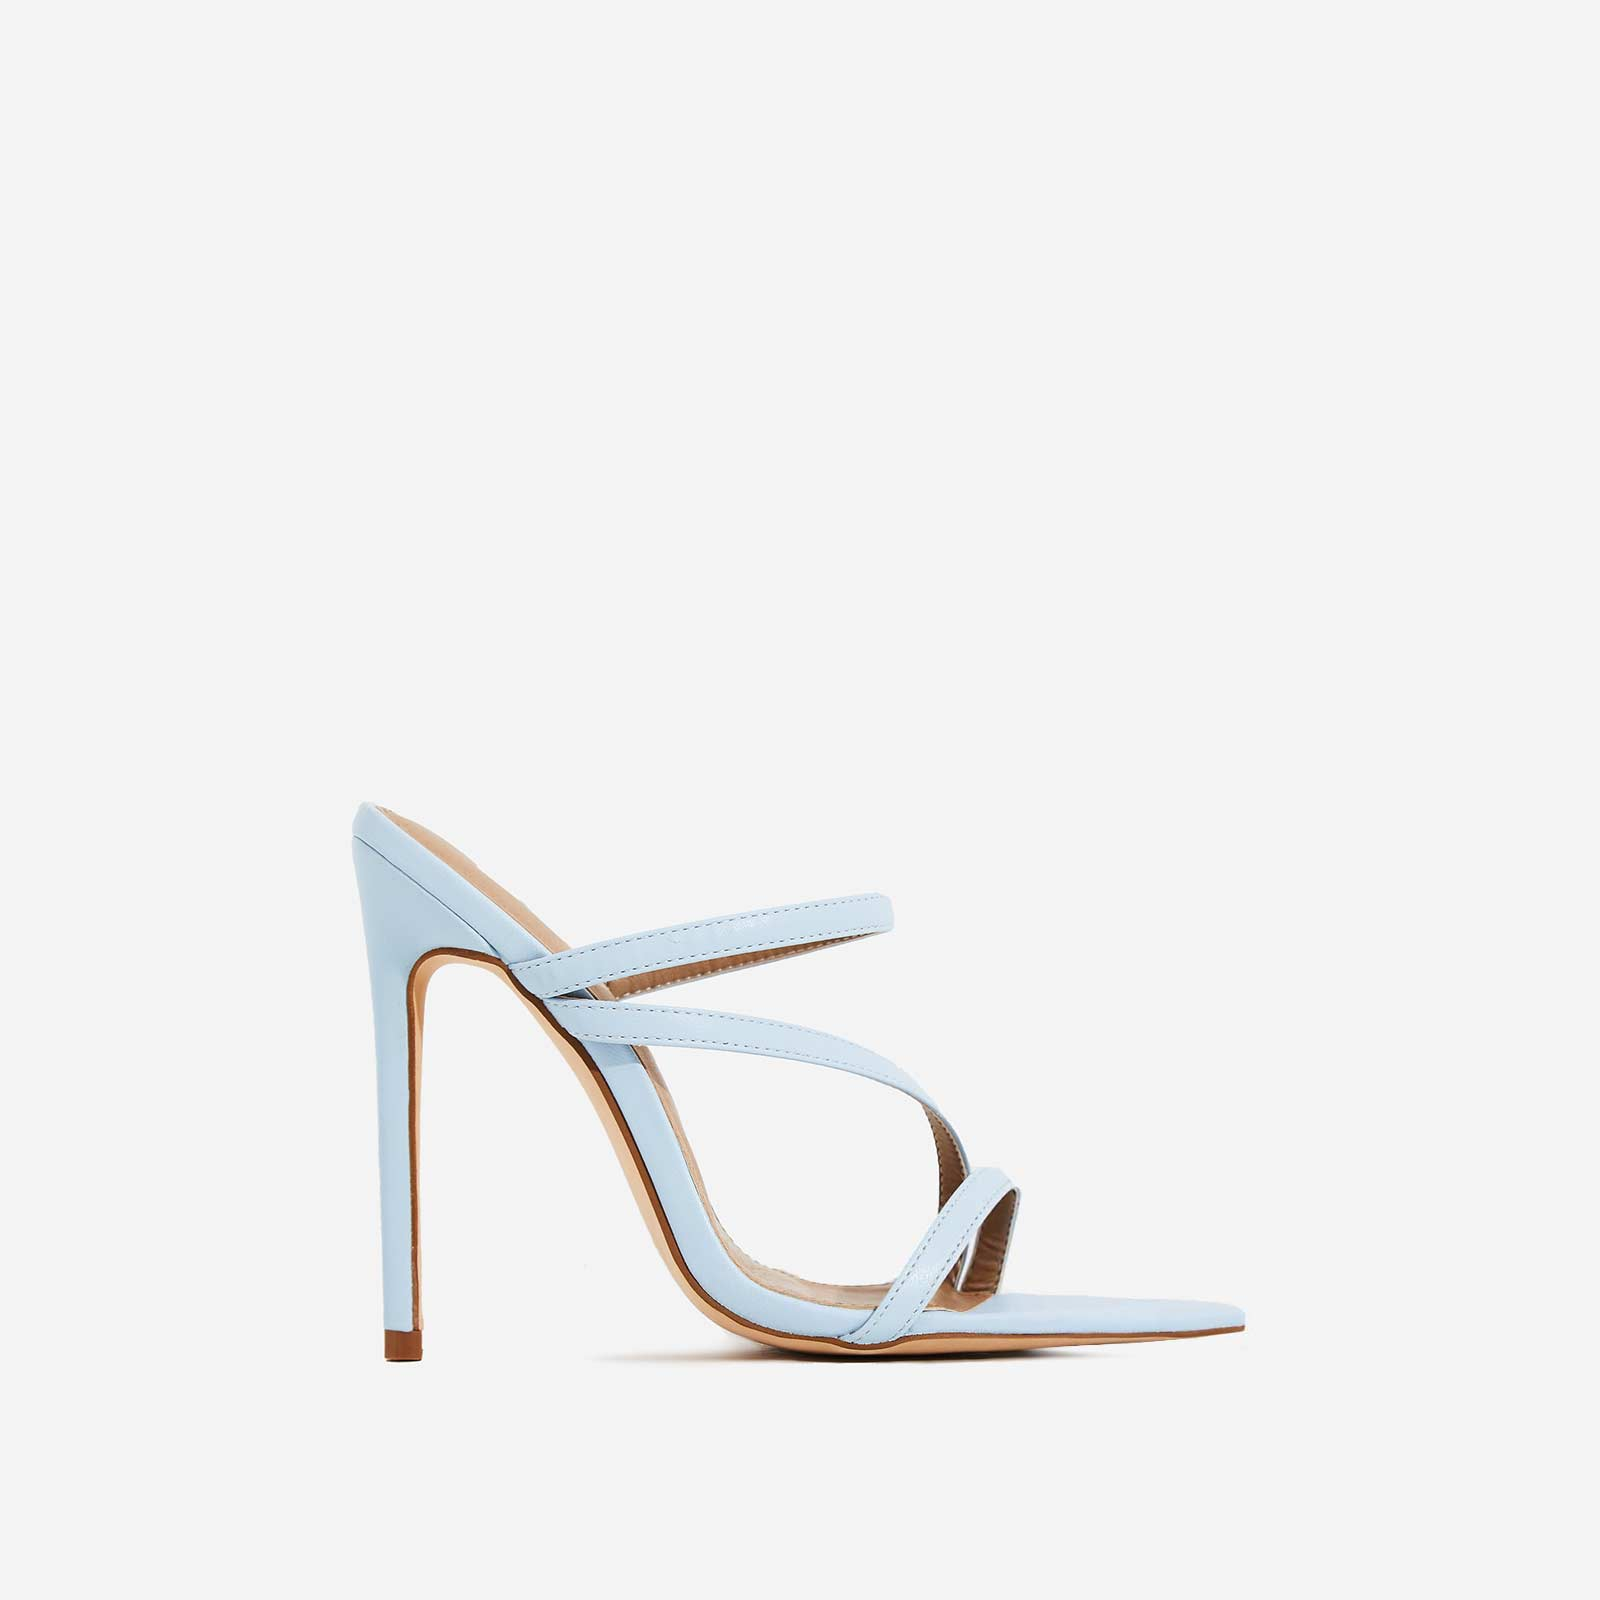 Aria Toe Strap Heel Mule In Light Blue Faux Leather